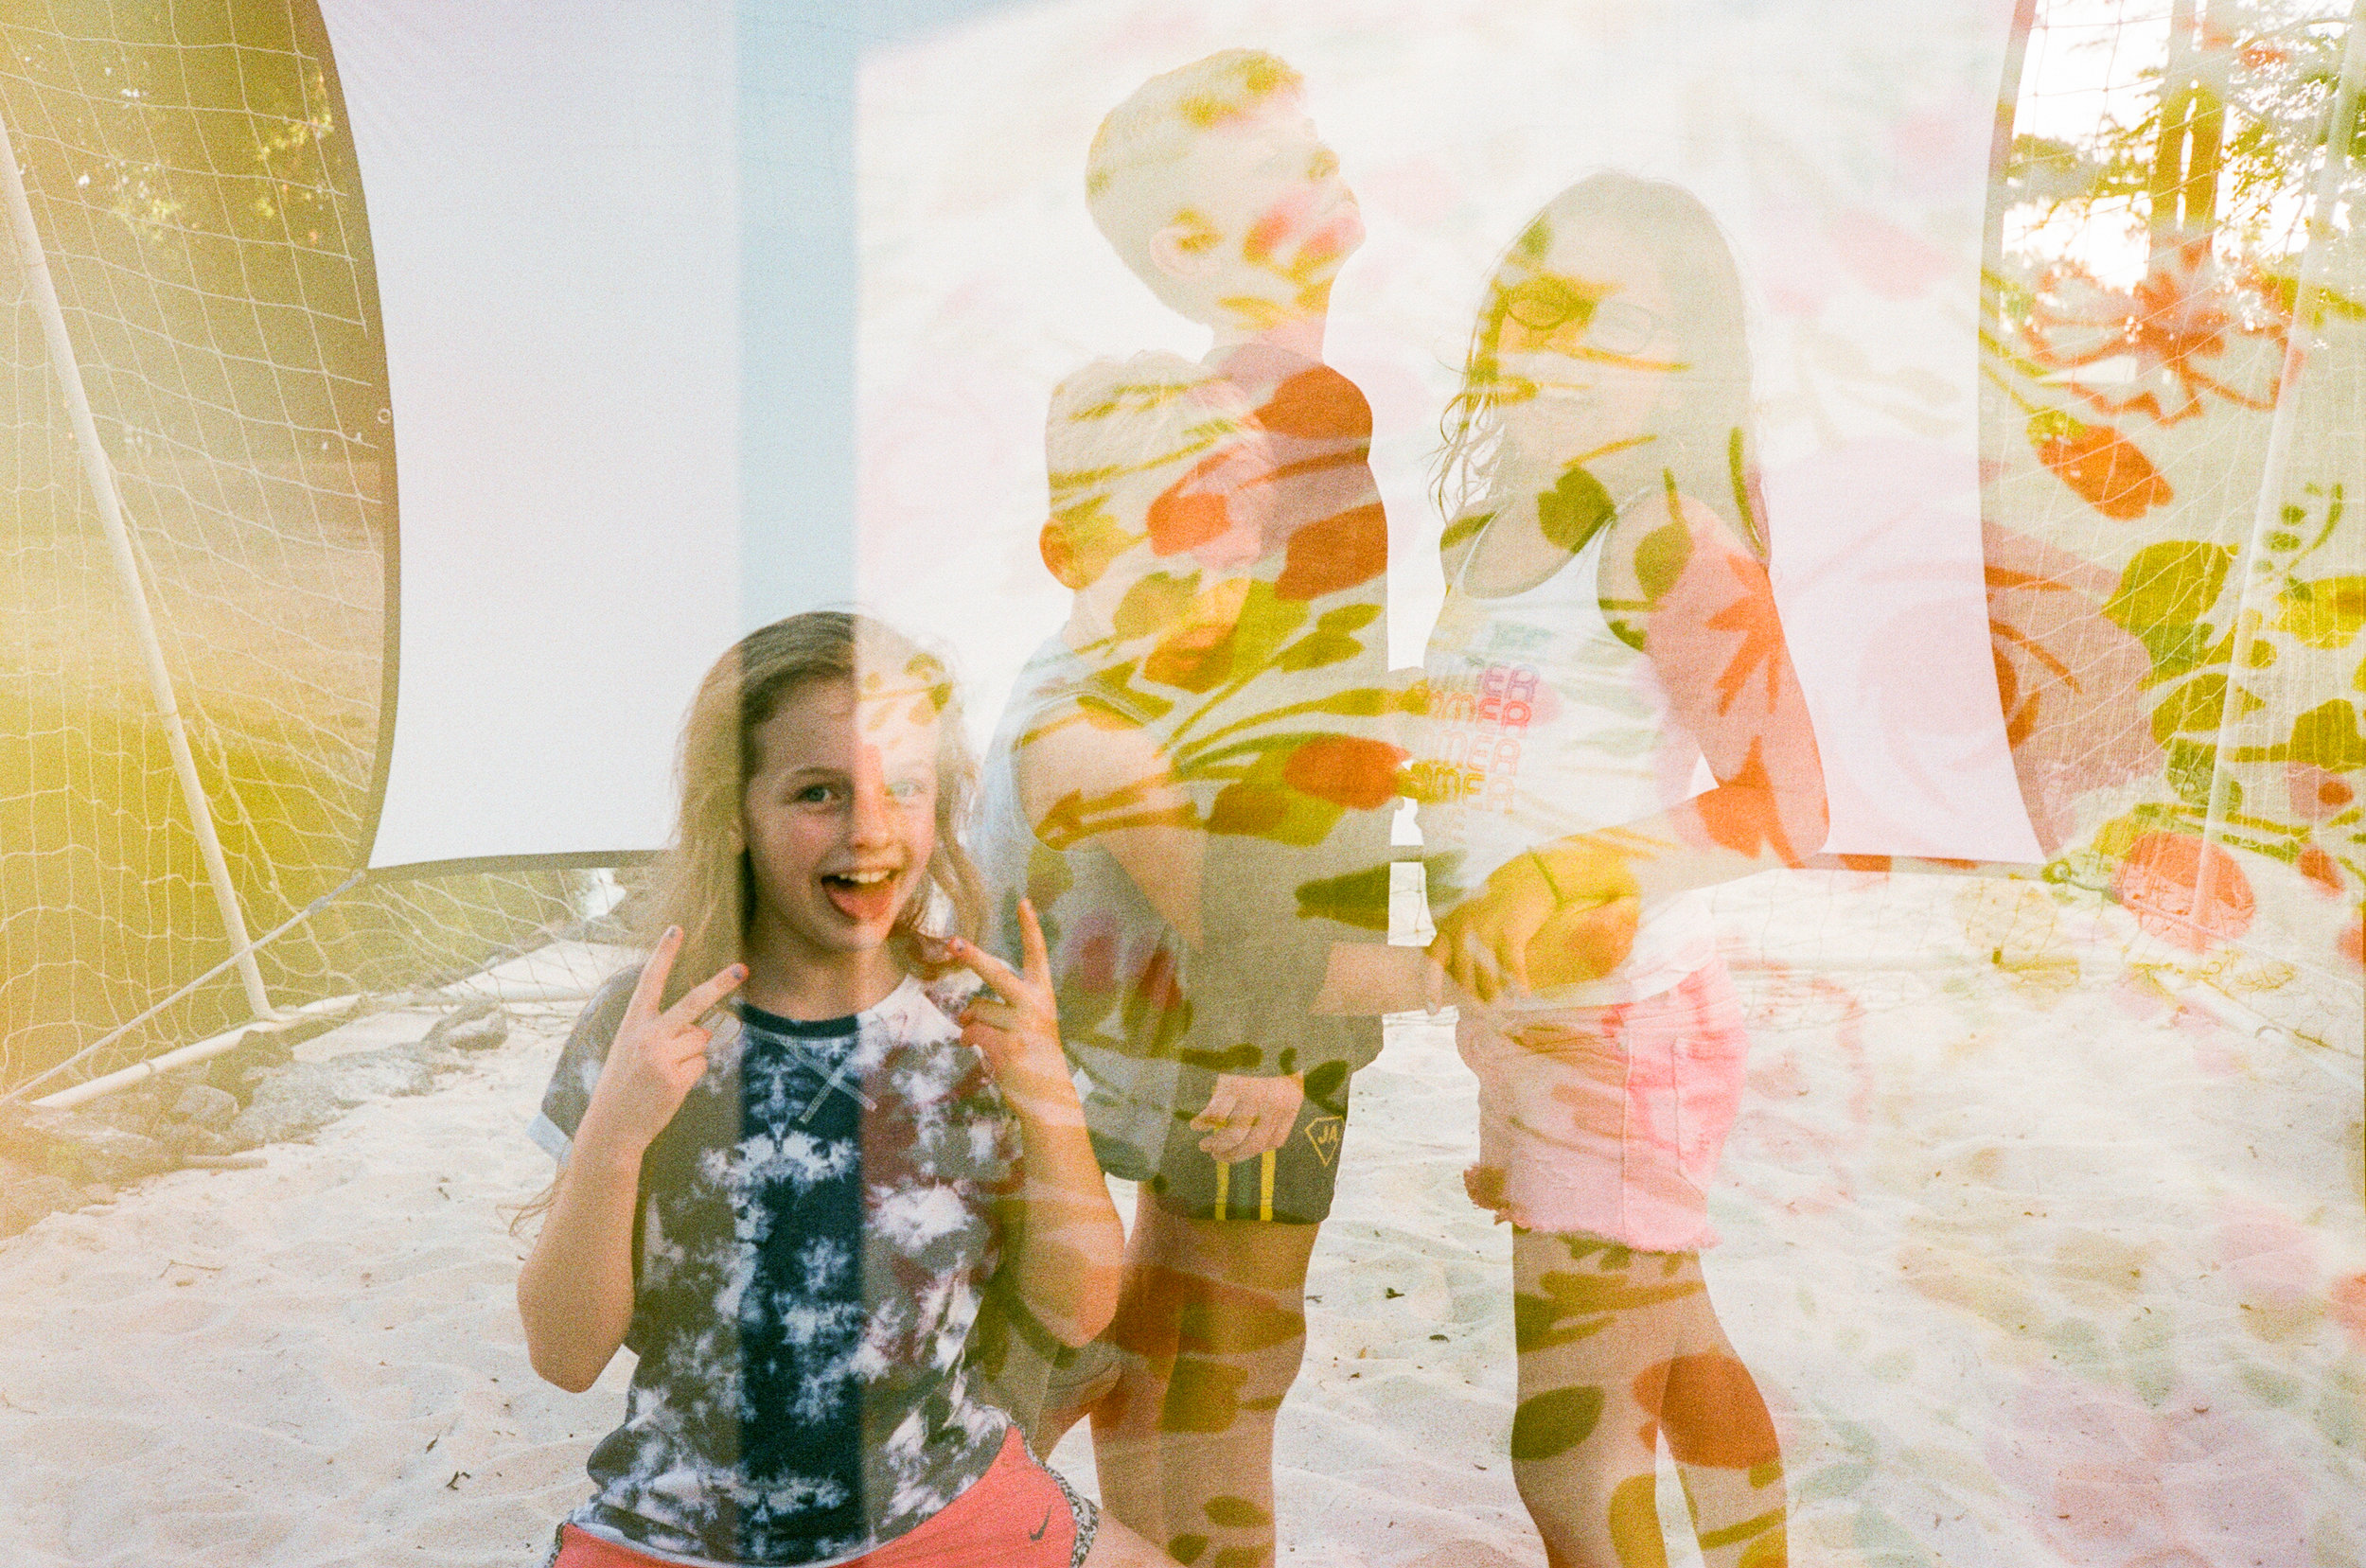 fourth-of-july-film-photography-nikon-action-touch-double-exposures